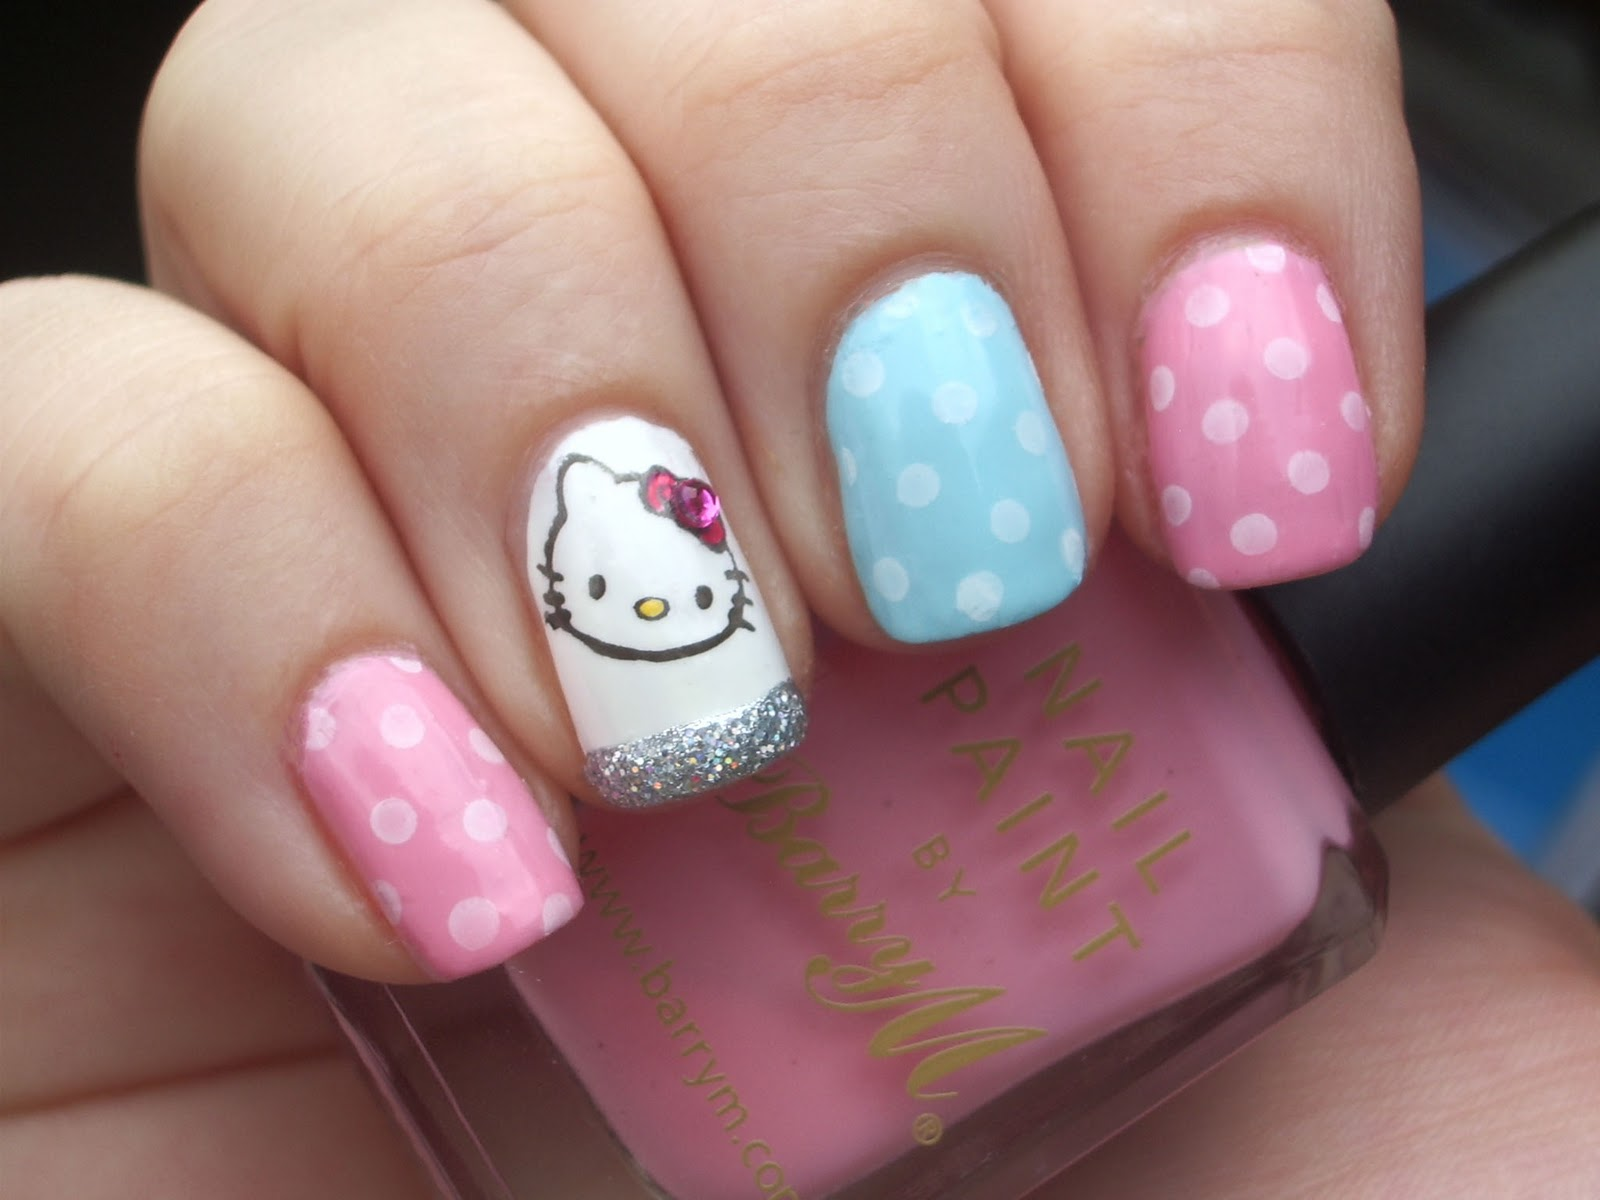 Pictures Of Hello Kitty Nail Designs - Anna Charlotta